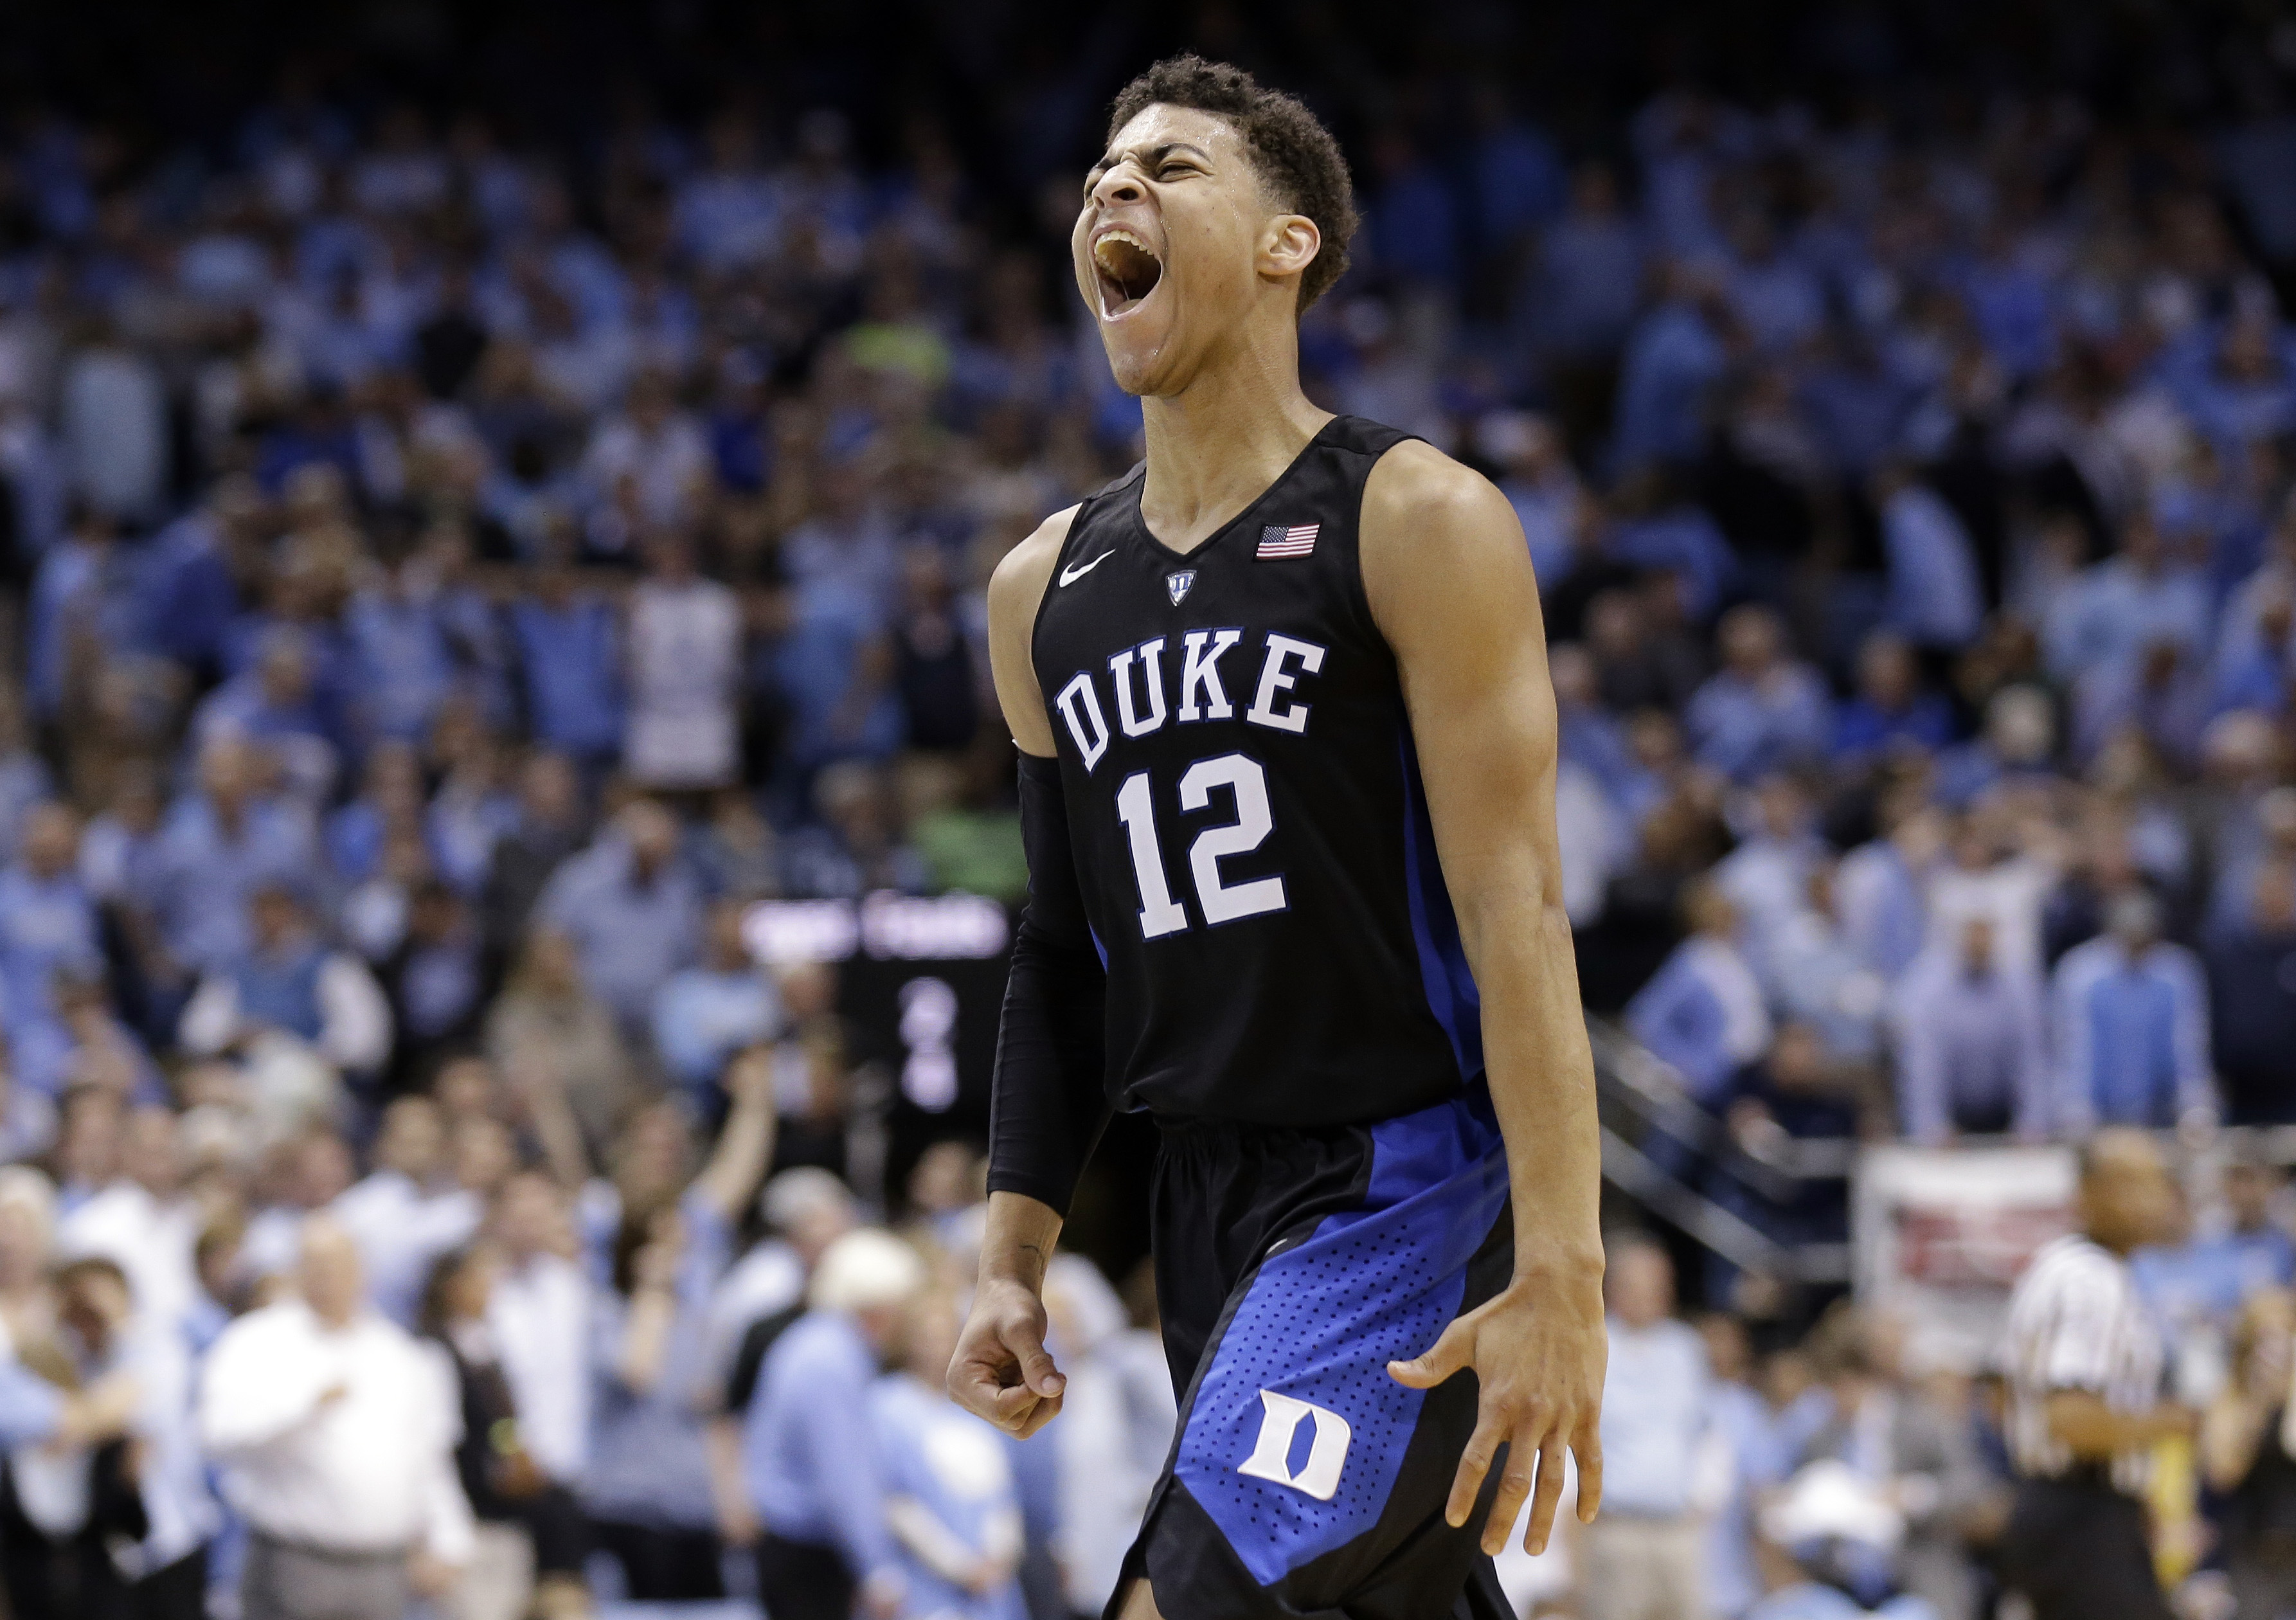 Duke's Derryck Thornton reacts following Duke's 74-73 win over North Carolina in an NCAA college basketball game in Chapel Hill, N.C., Wednesday, Feb. 17, 2016. (AP Photo/Gerry Broome)